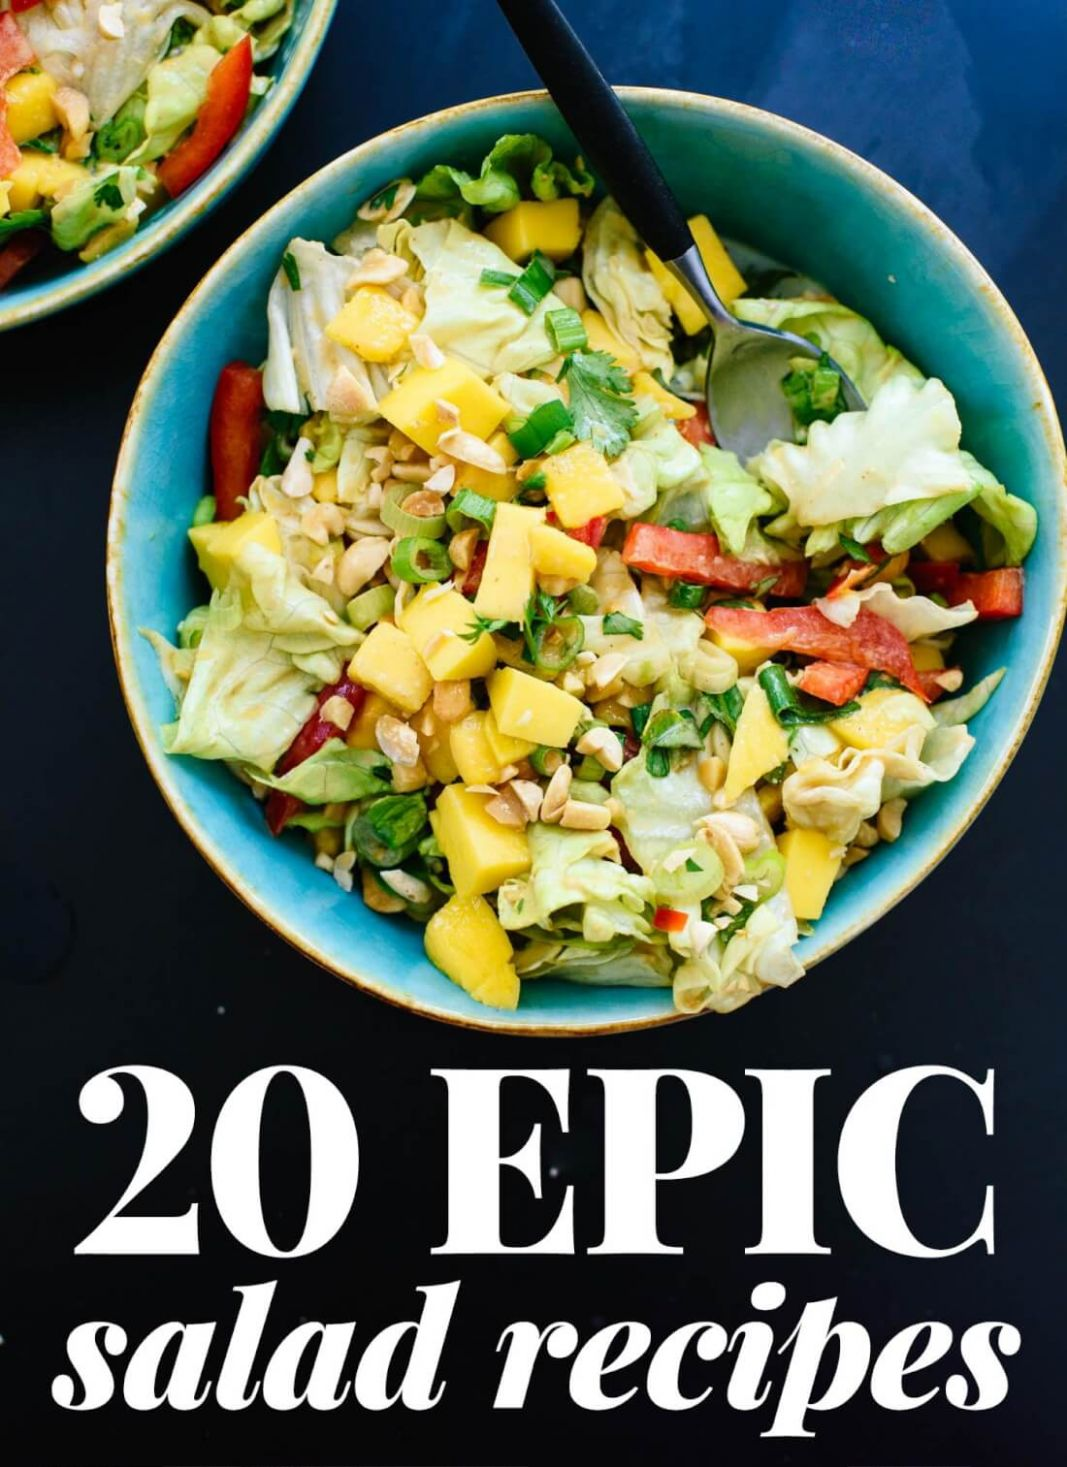 12 Epic Salad Recipes - Cookie and Kate - Salad Recipes You Can Make Ahead